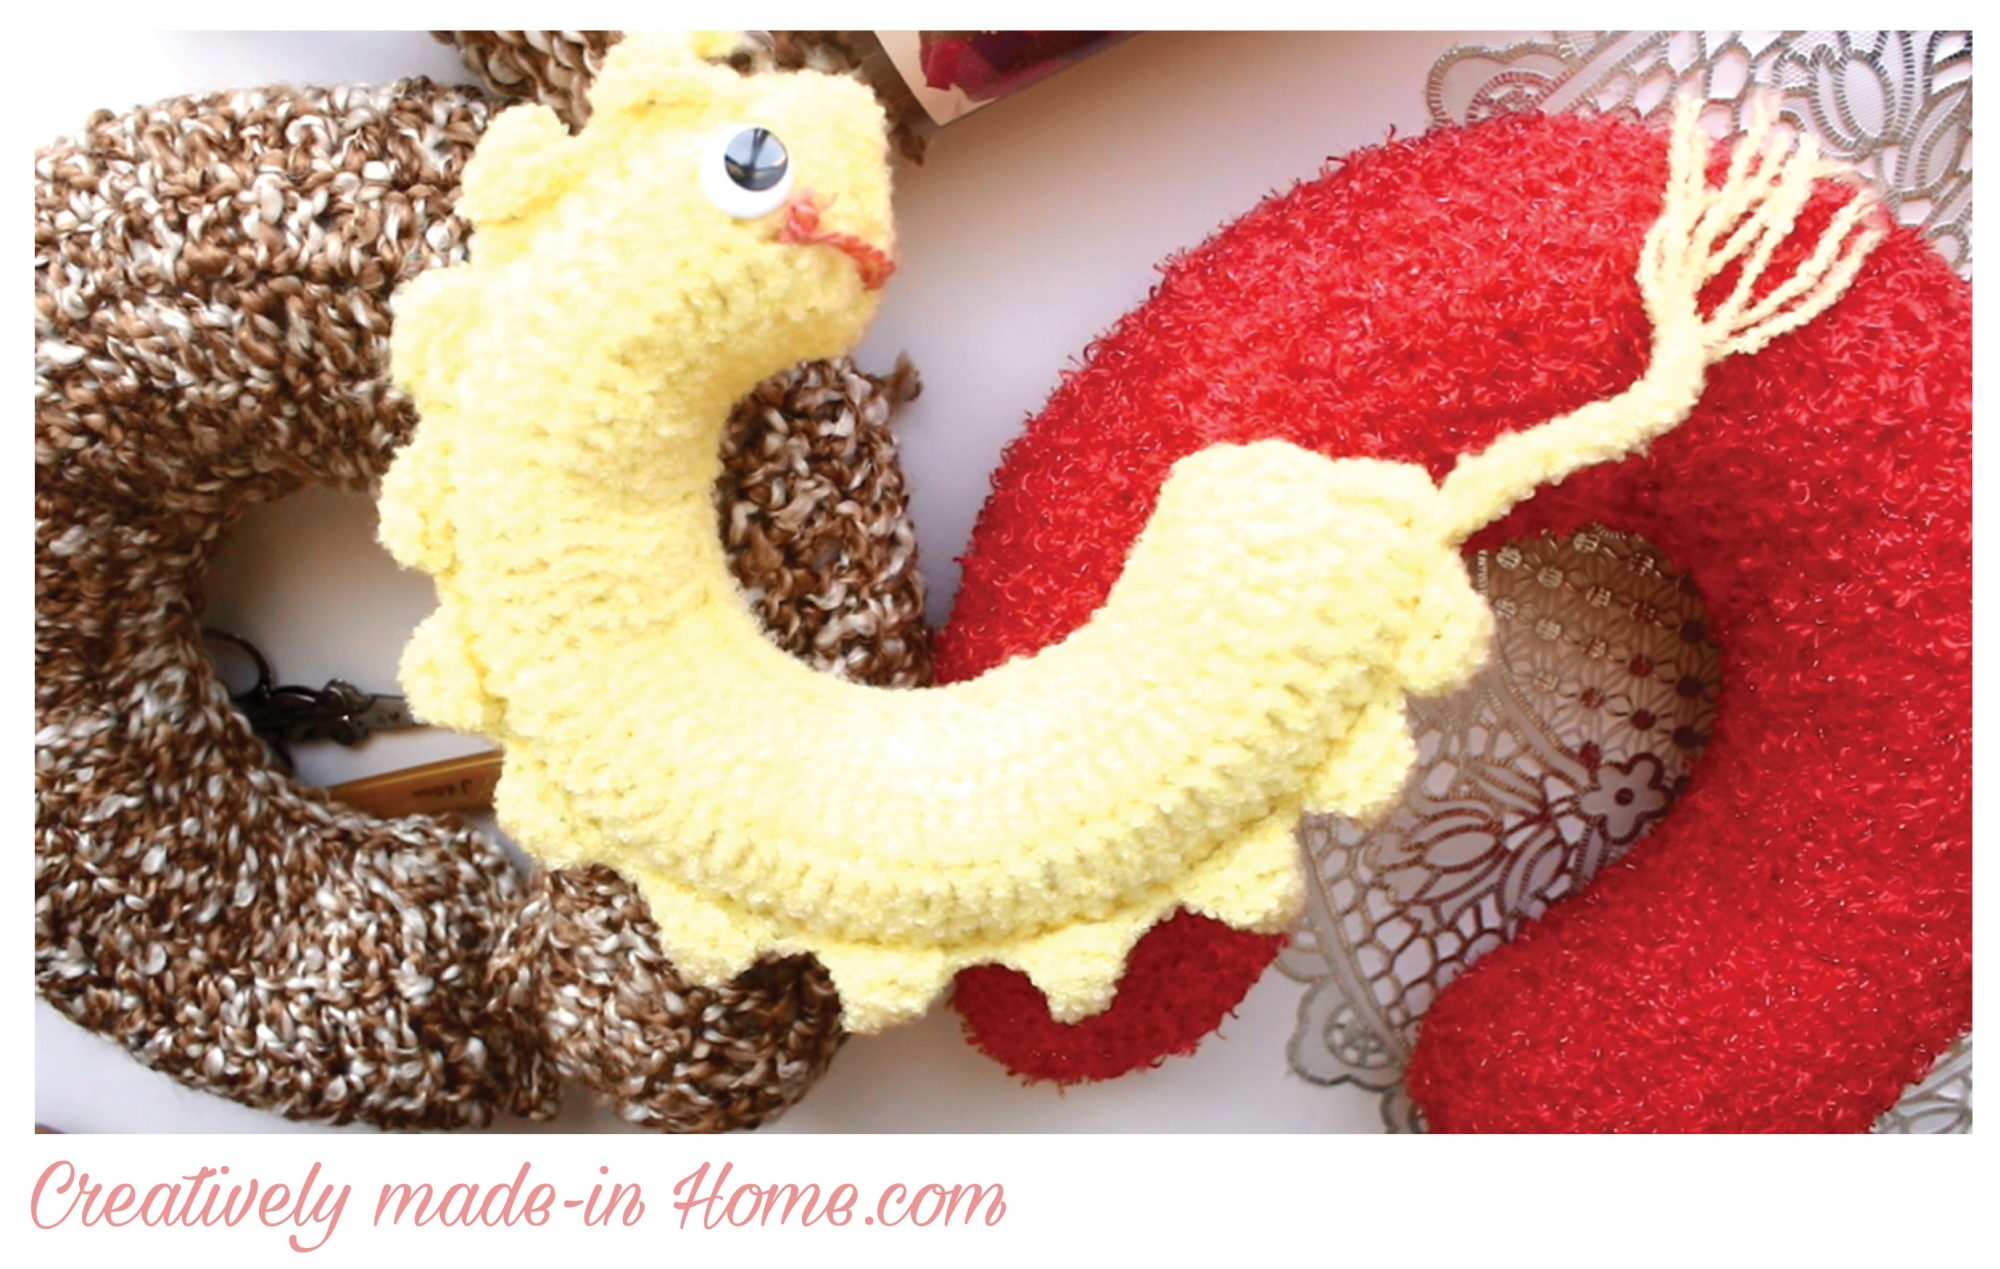 How to make easy crochet Travel Pillow - Creatively made-in Home